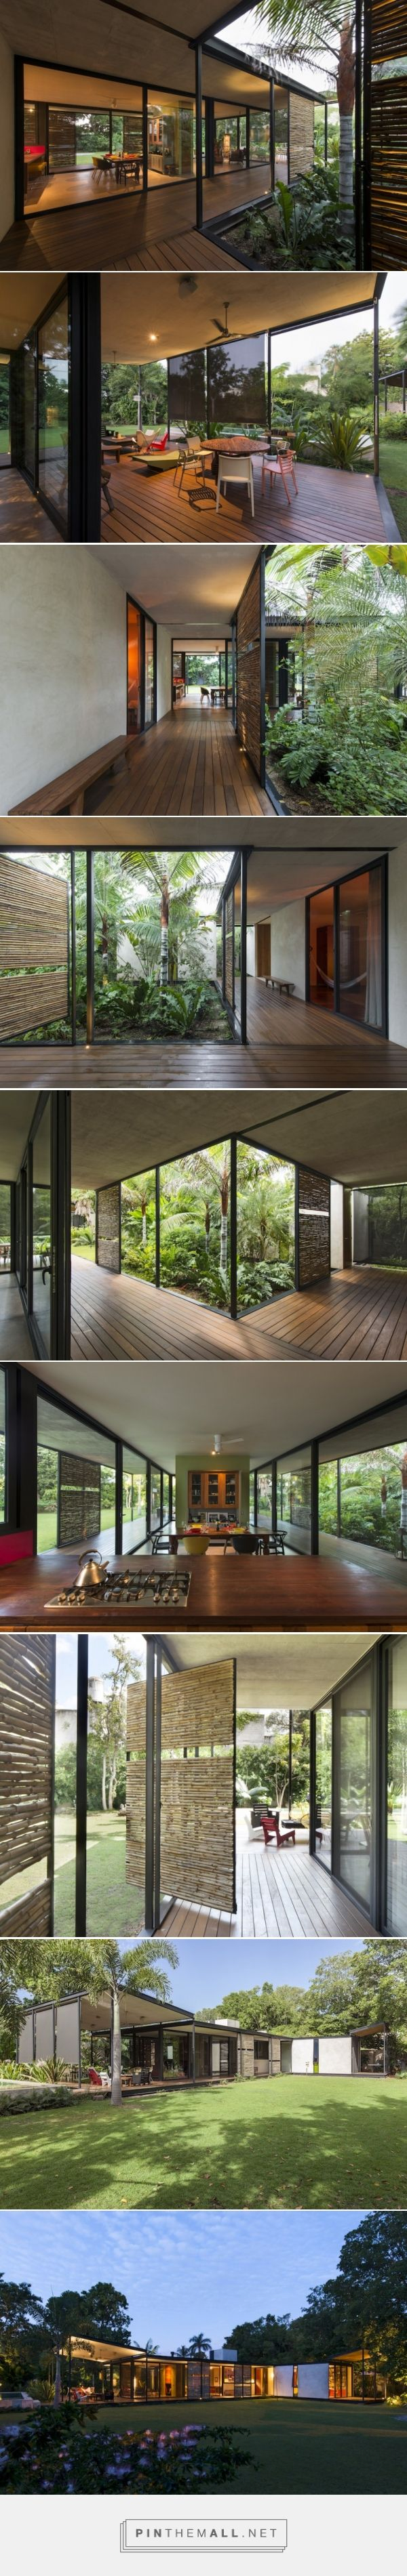 reyes+ríos+++larraín+arquitectos+builds+casa+itzimná+in+mexico+-+created+via+https://pinthemall.net